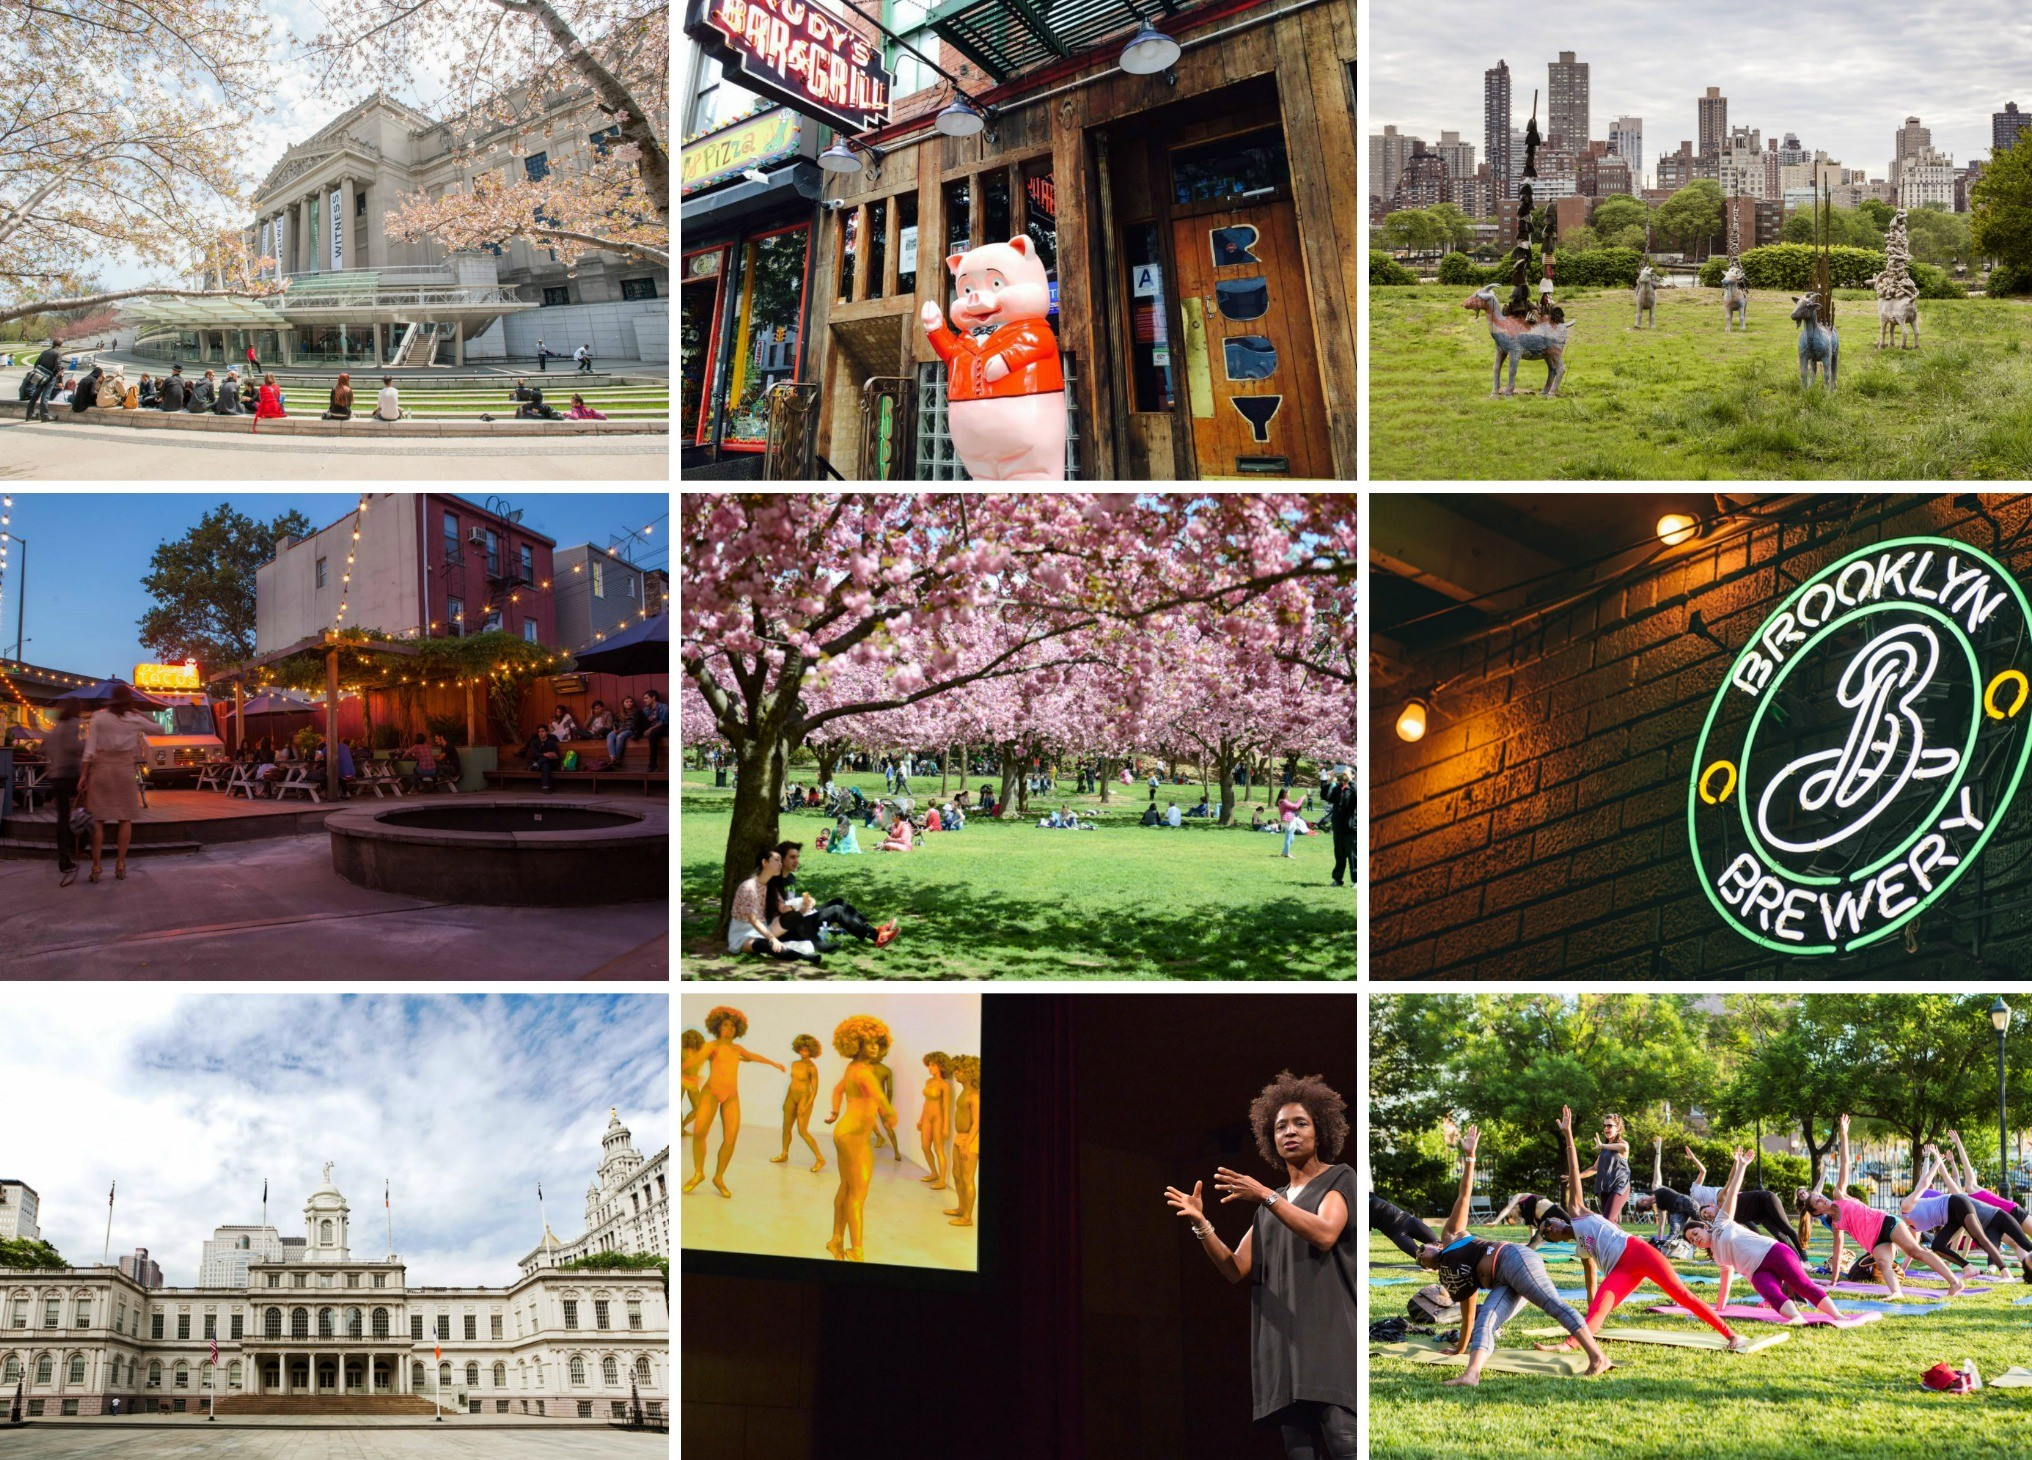 100 free things to do in new york city 6sqft rh 6sqft com free things to do in new york this weekend free things to do in nyc this sunday